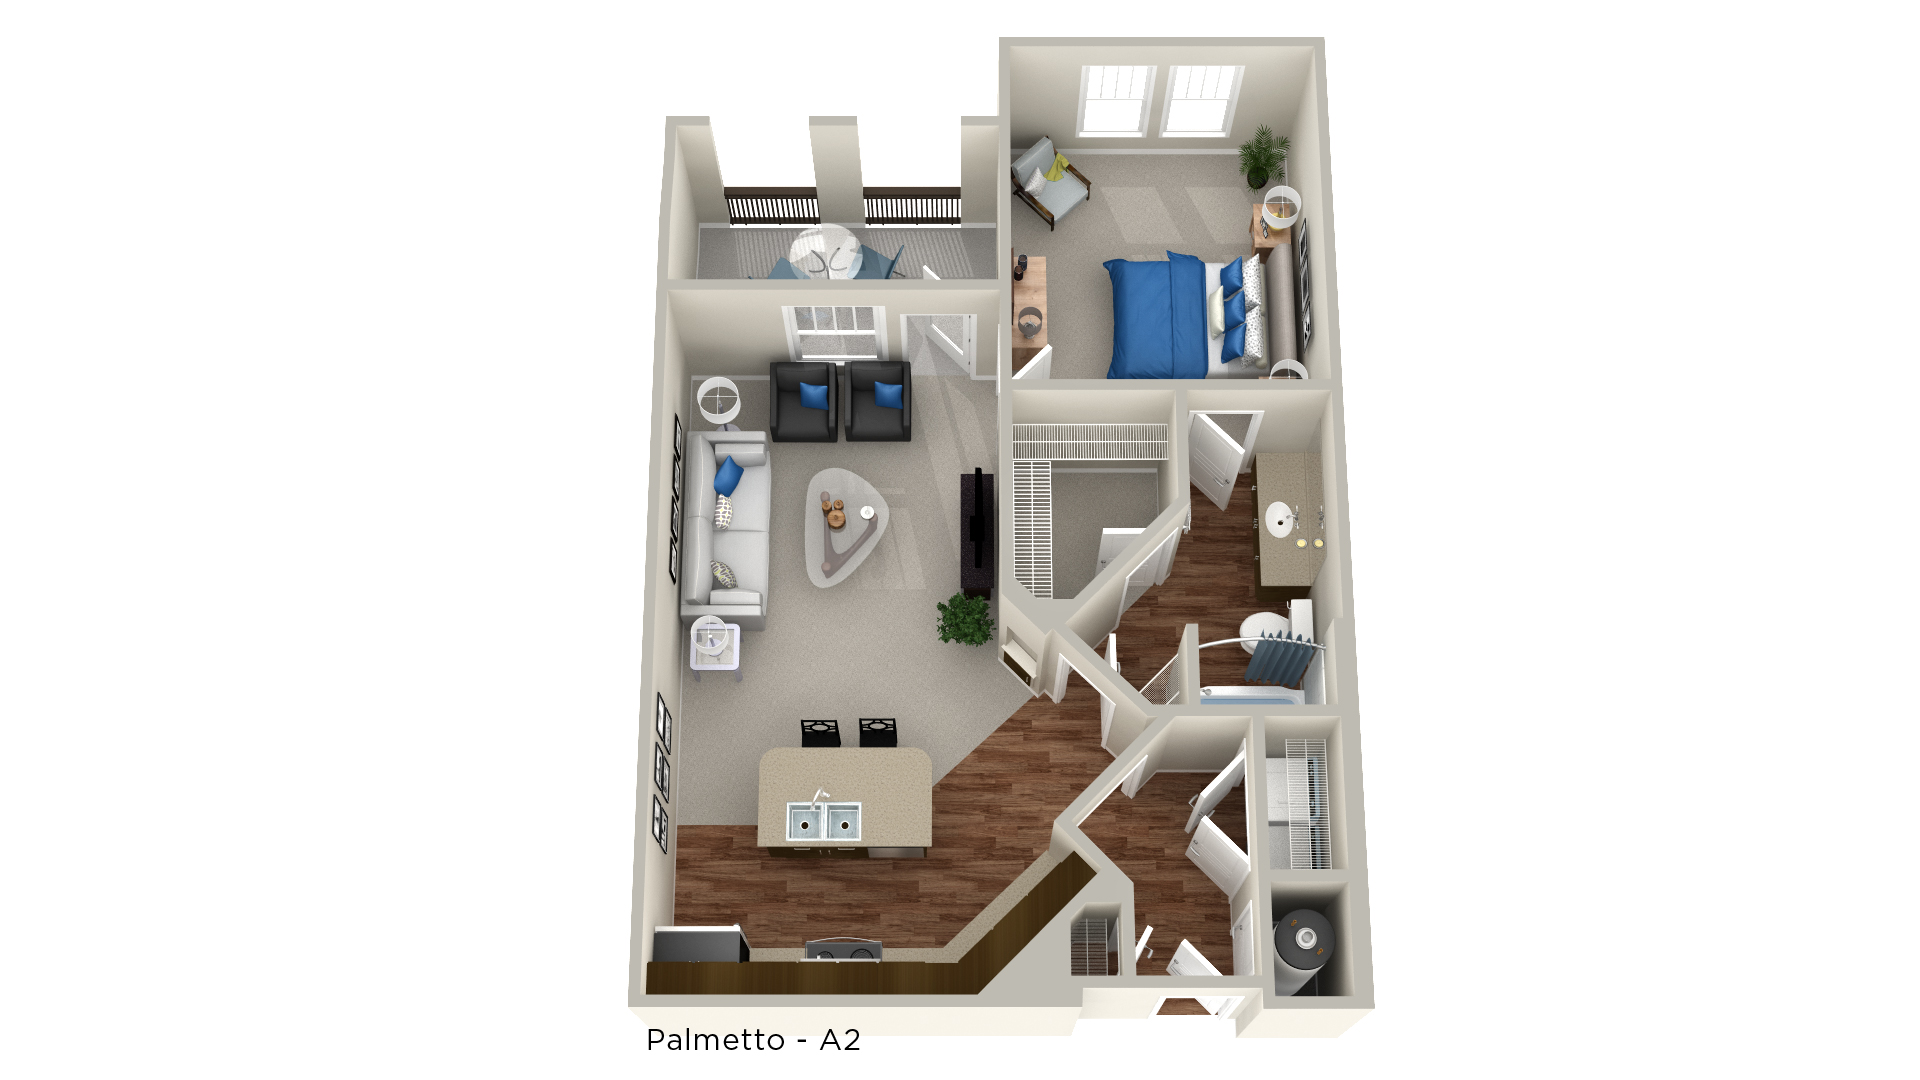 Whitepalm Luxury Apartment Homes - Floorplan - Palmetto